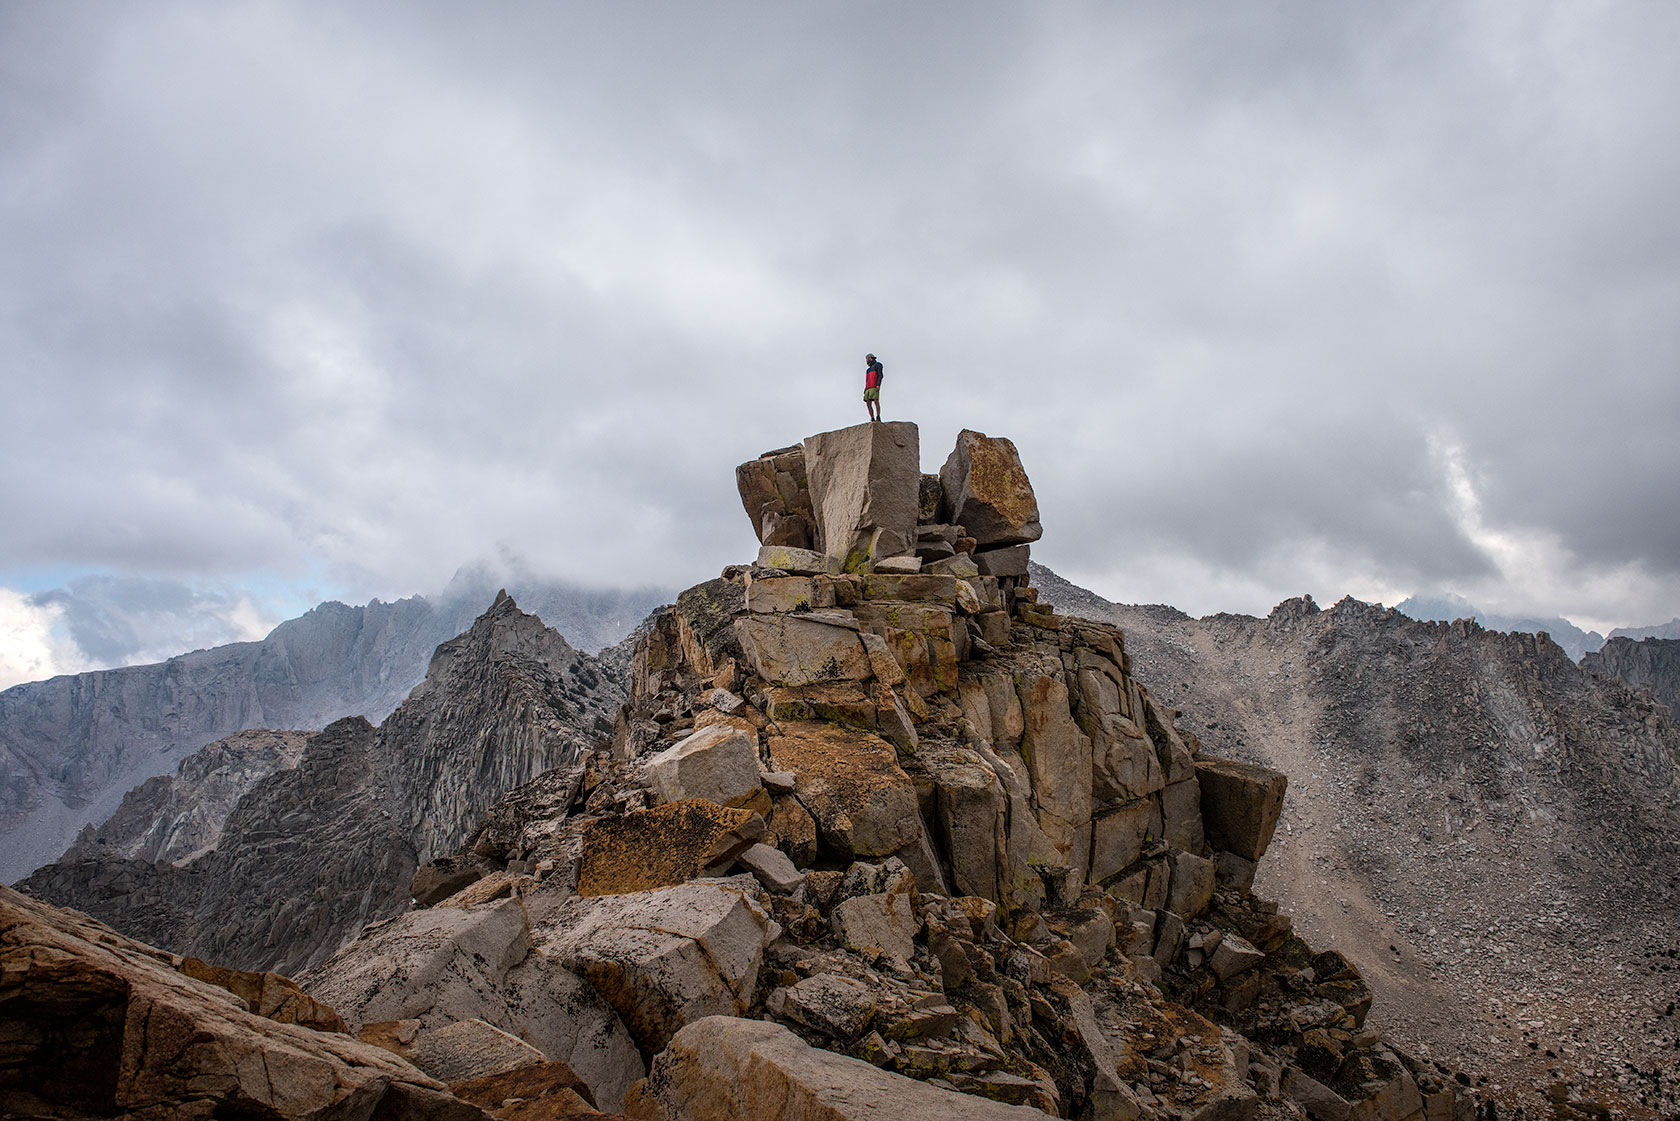 austin-trigg-patagonia-hiking-john-muir-trail-wilderness-california-adventure-outside-camp-sierra-nevada-lifestyle-kearsarge-pass-storm-weather-clouds-rocks.jpg